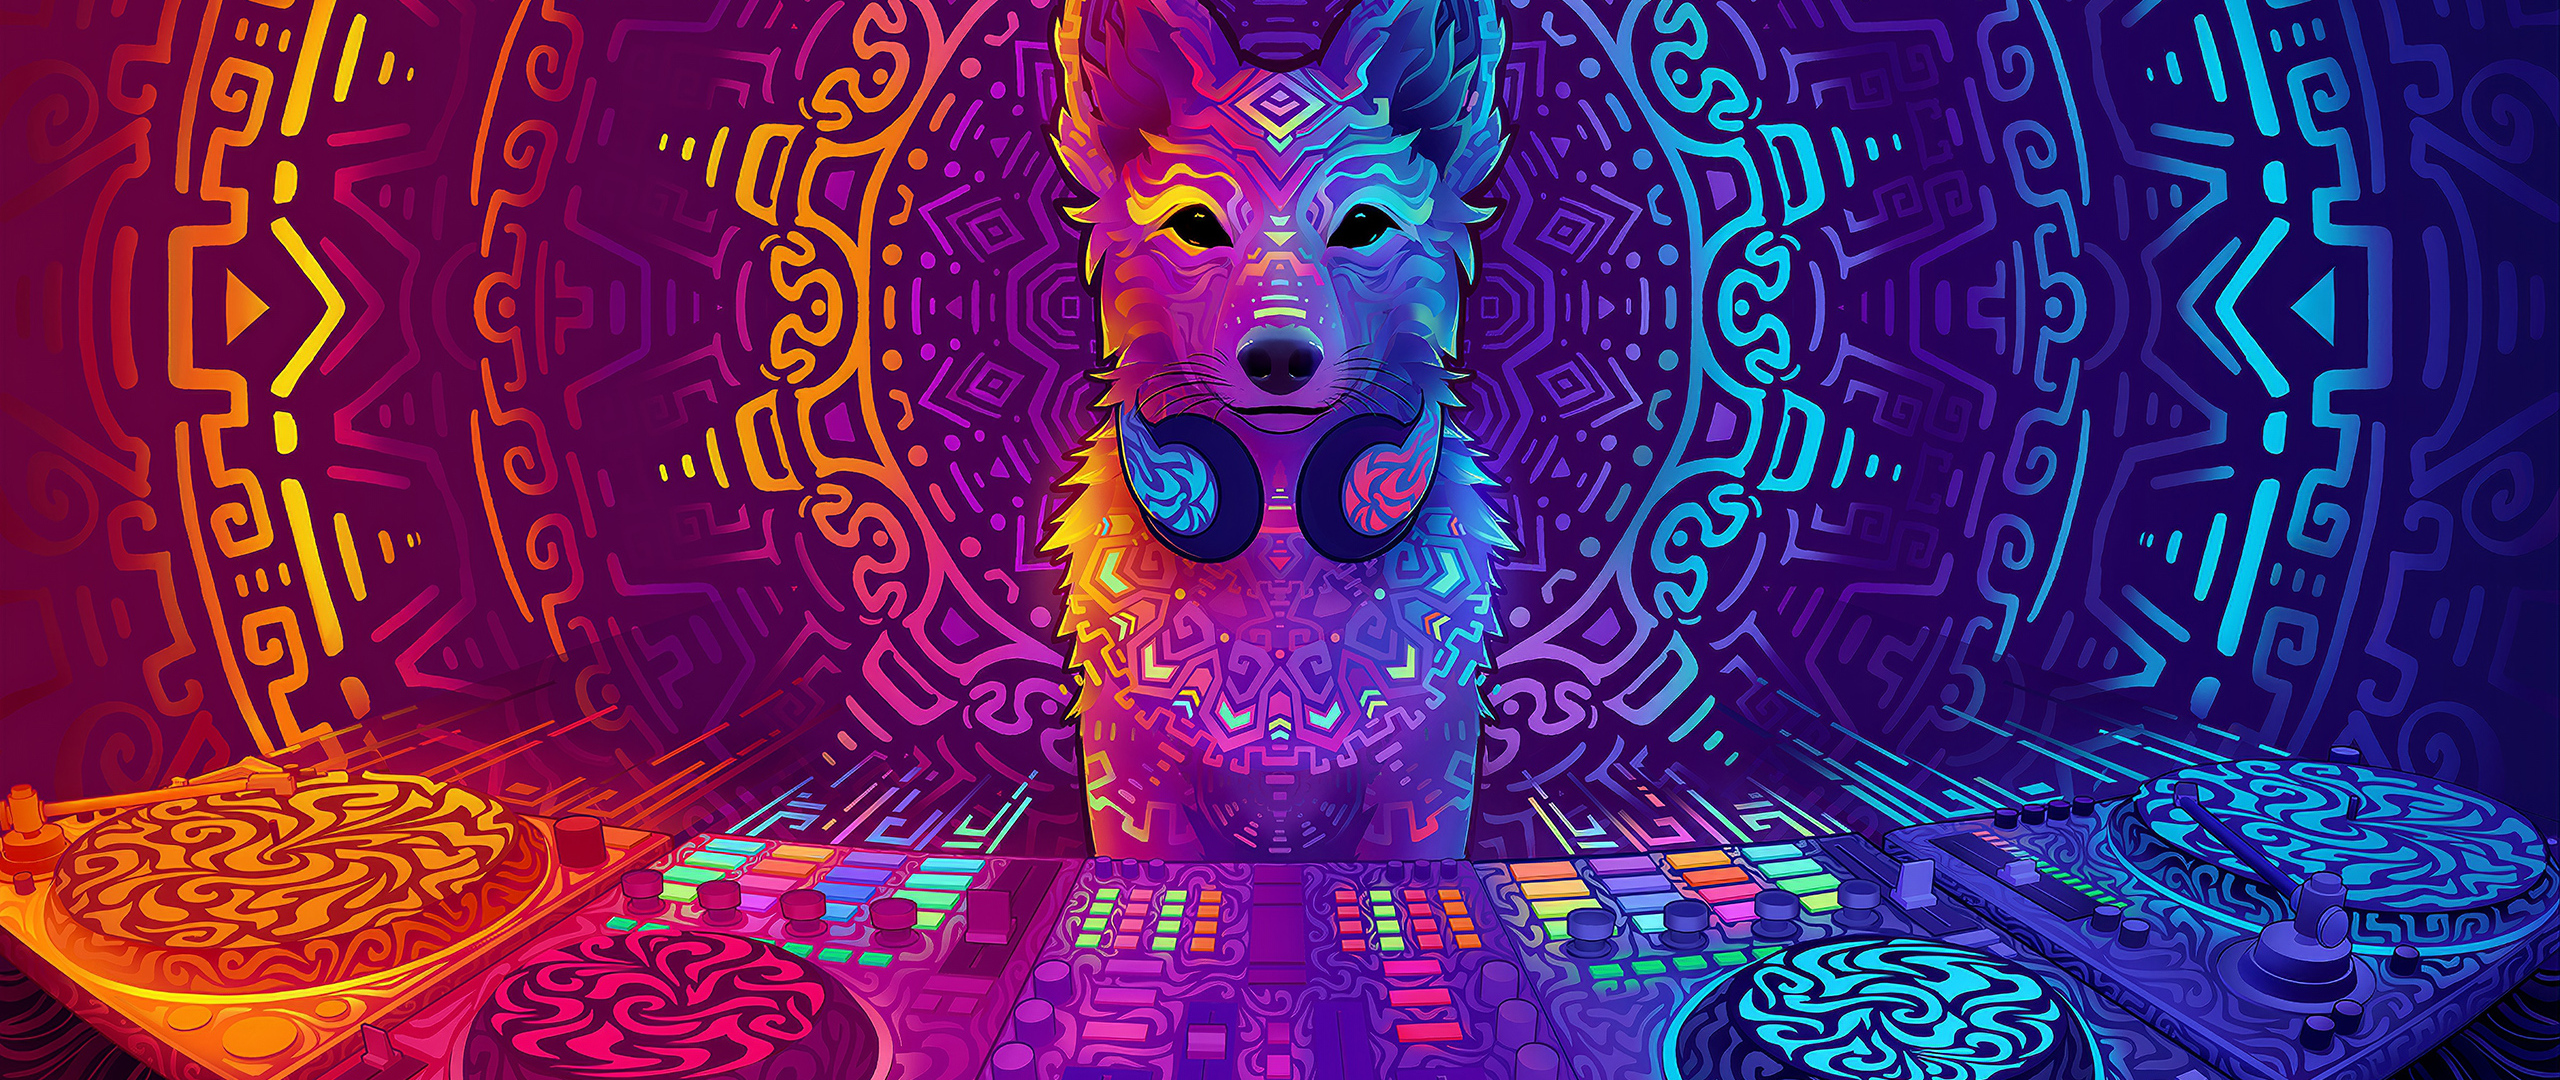 disco-dingo-dog-21.jpg